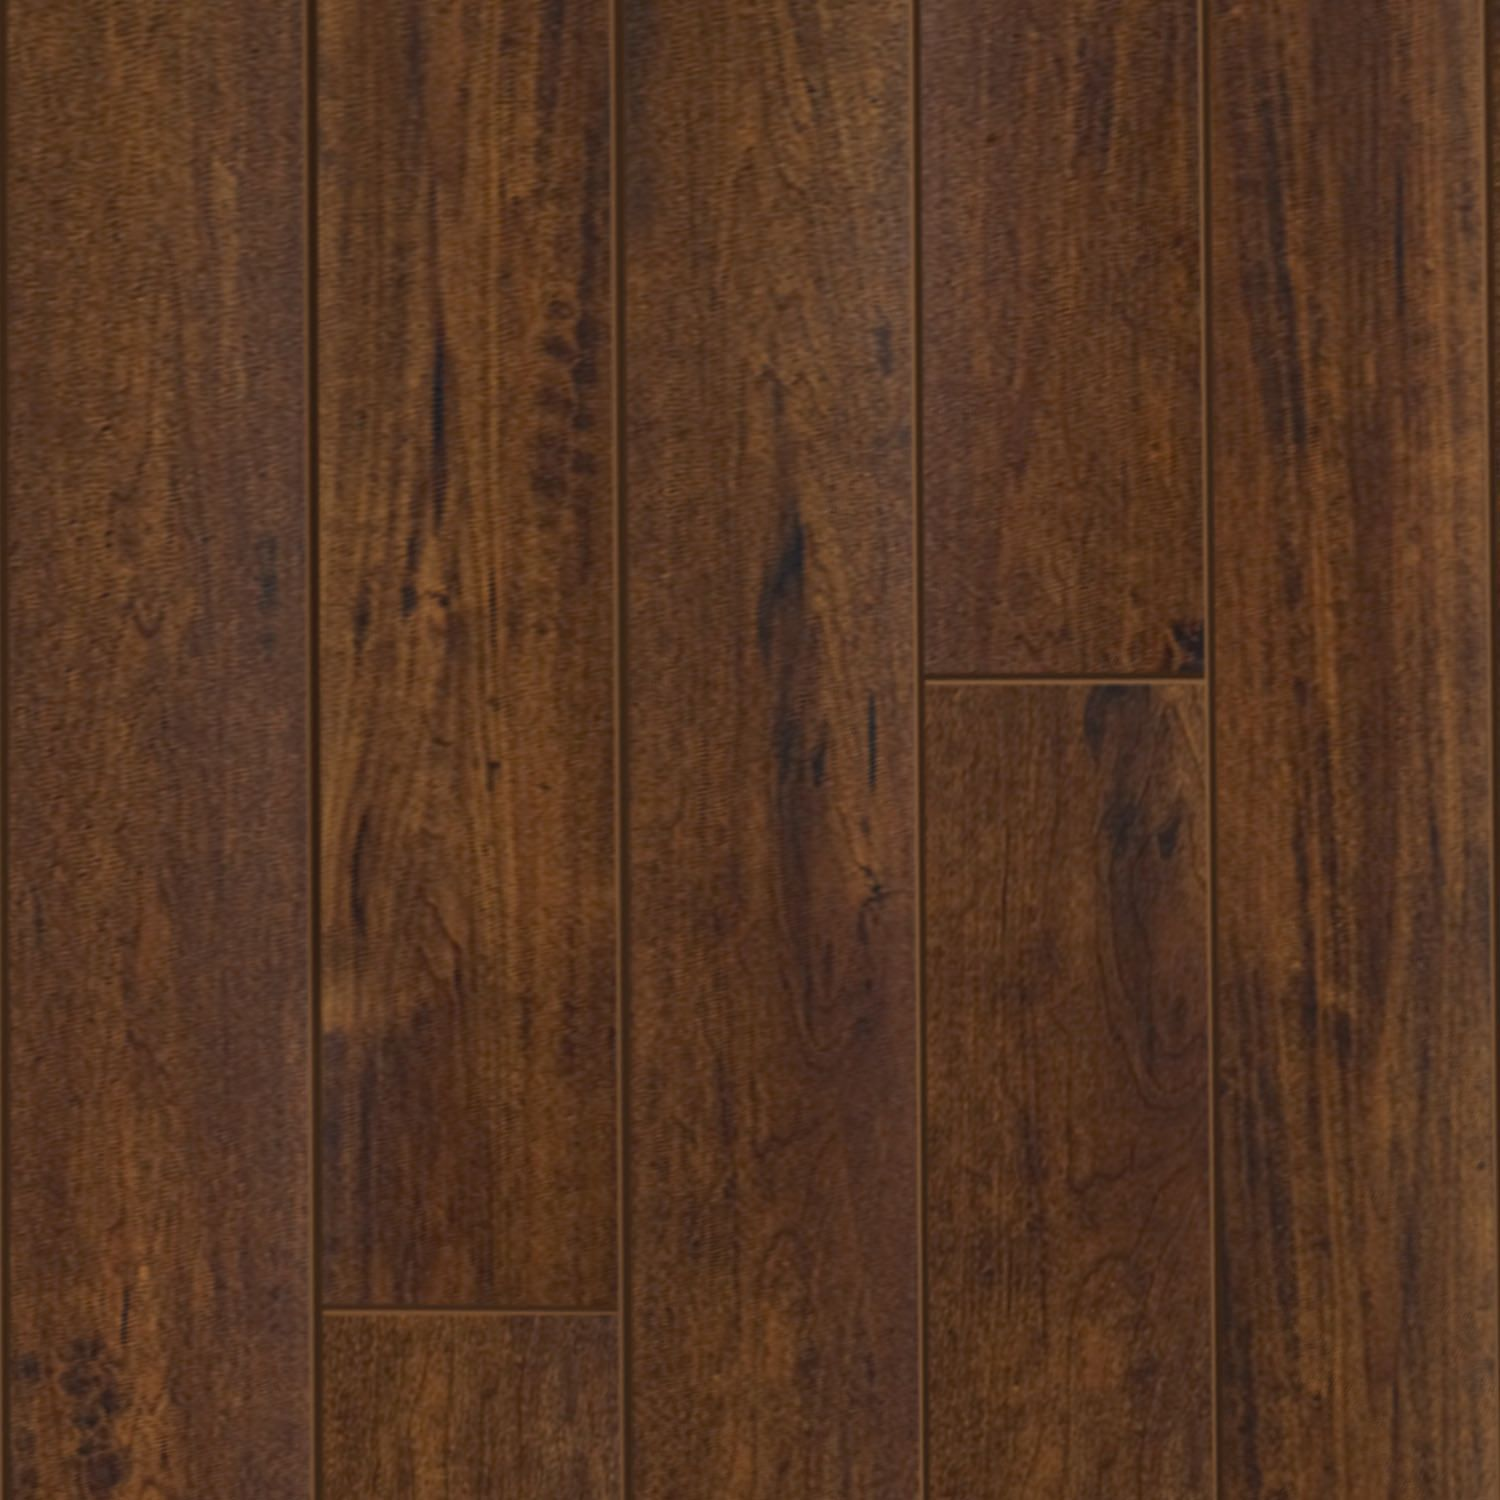 Select Surfaces Click Laminate Flooring   Cocoa Walnut   17.23 Sq. Ft. For  $29.12